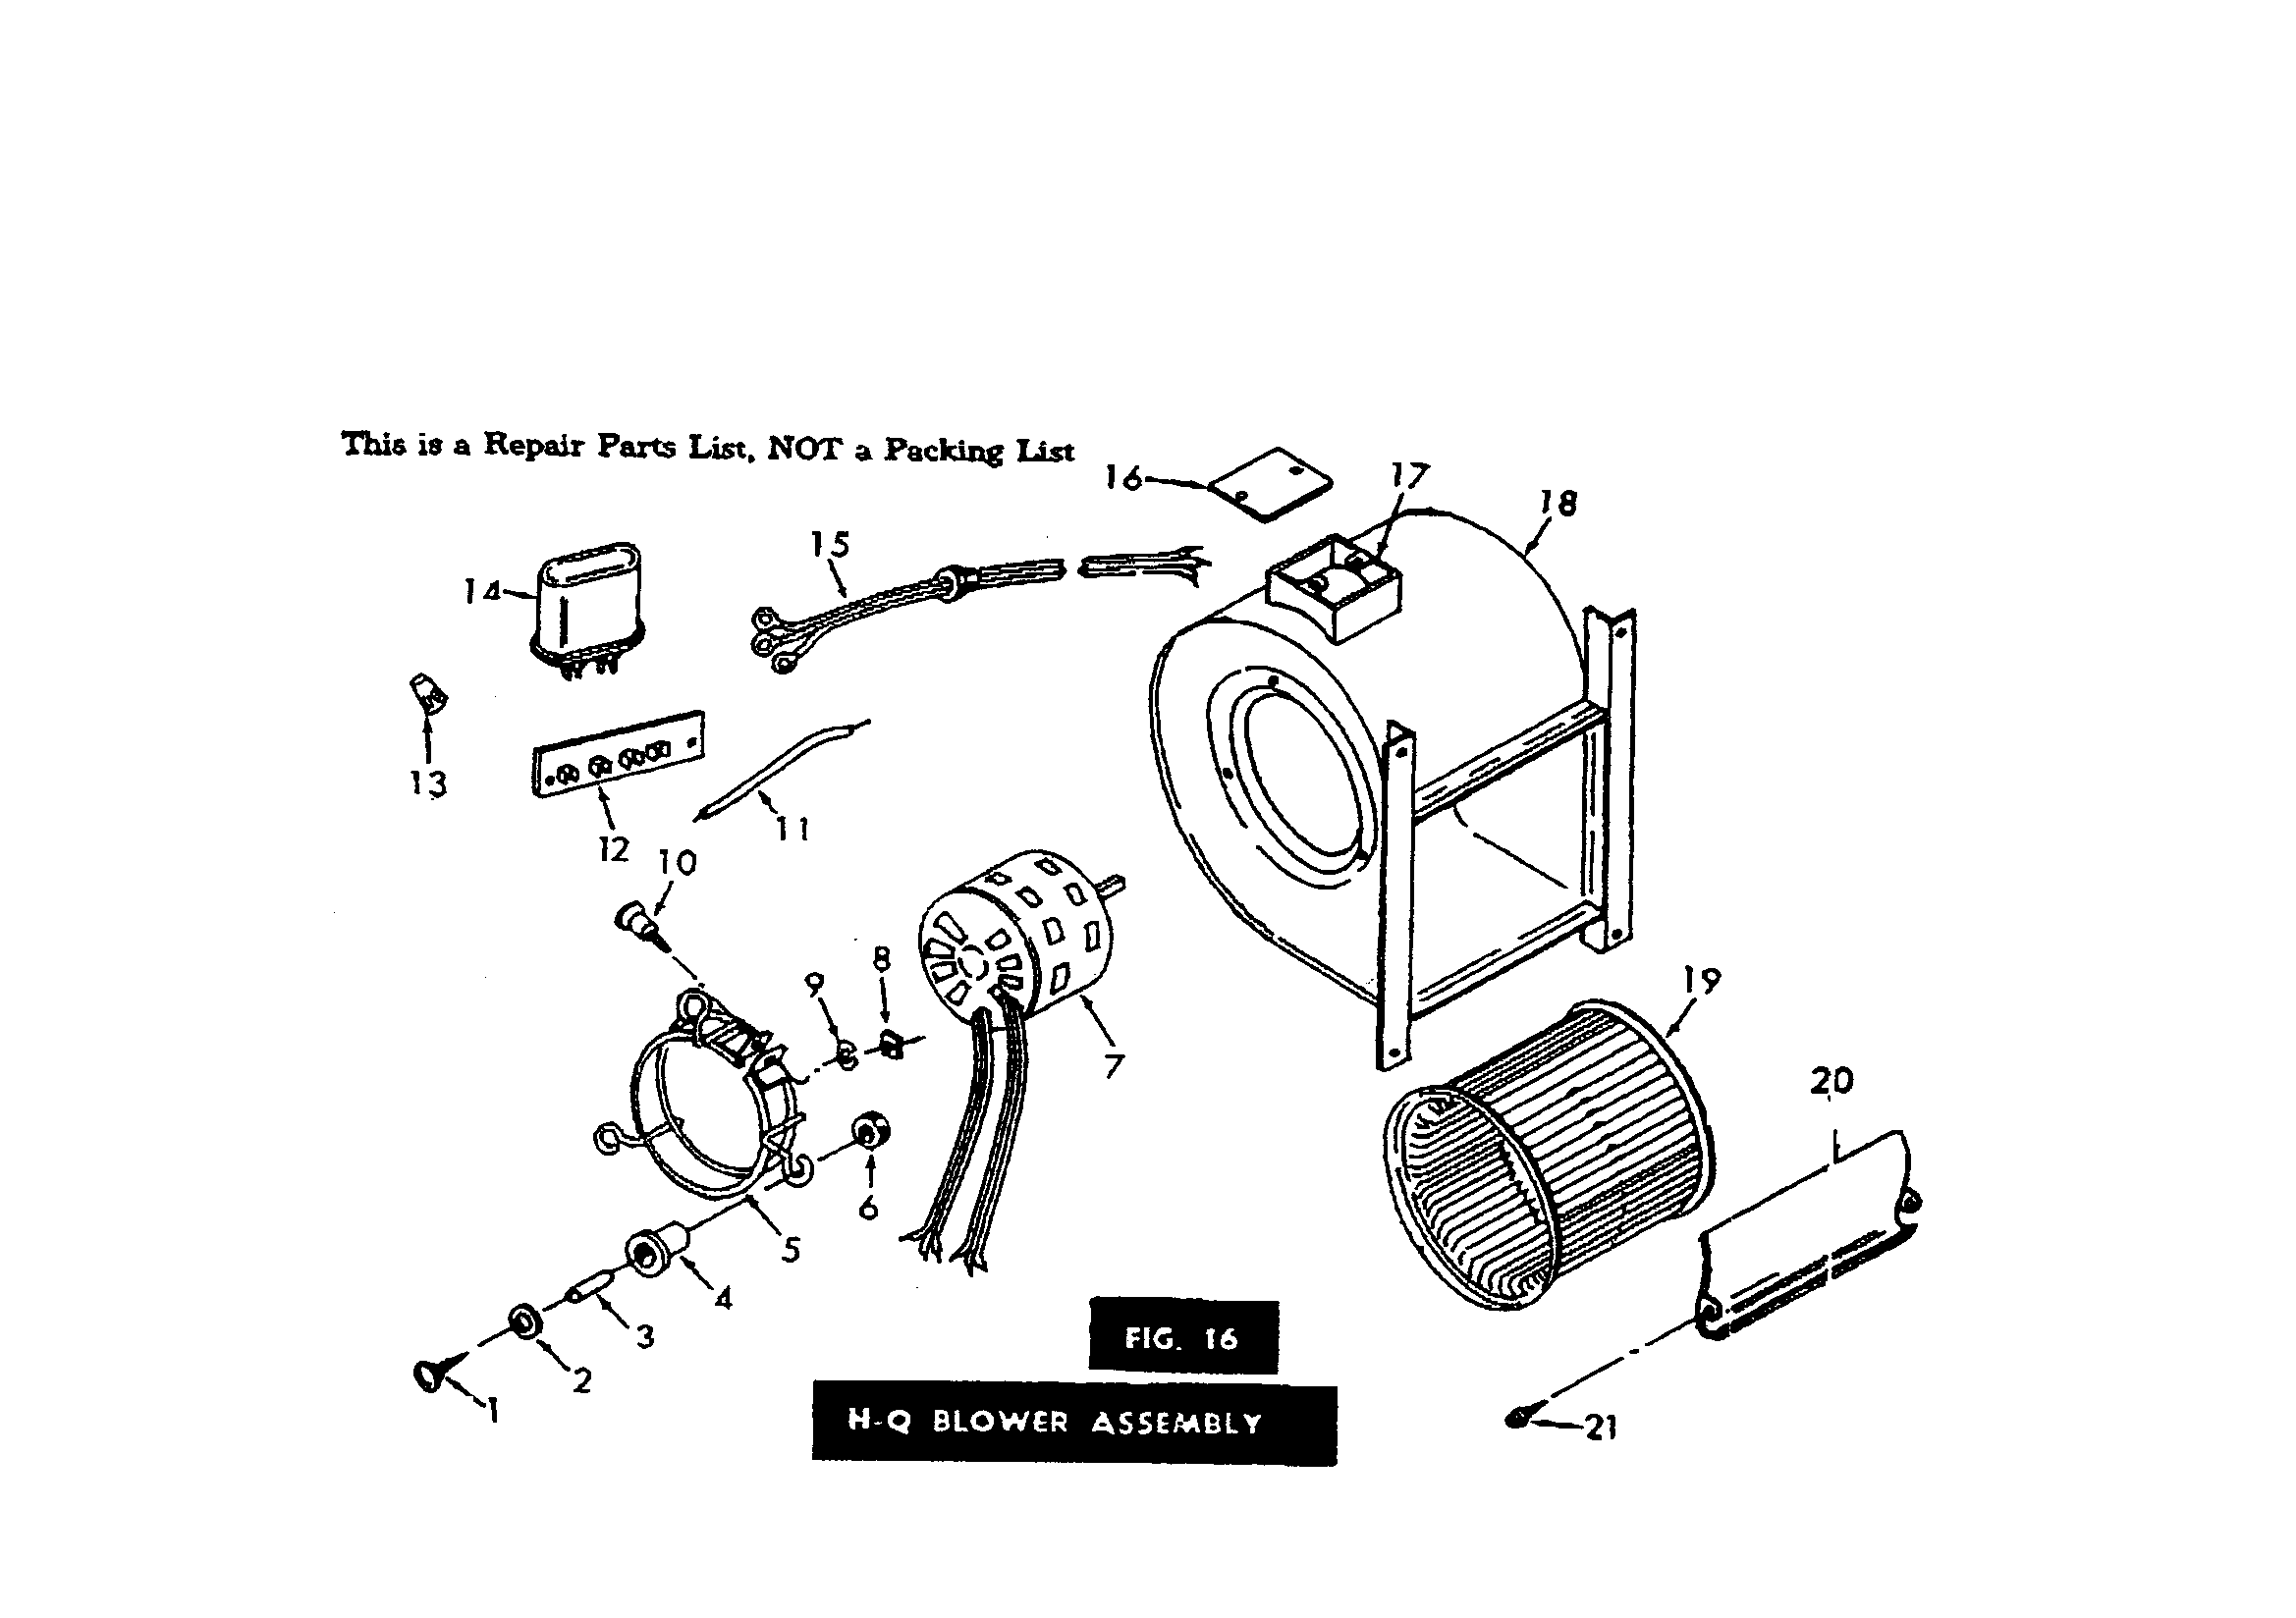 KENMORE Gas-Fired Sectional Furnace Fig.16 h-q blower